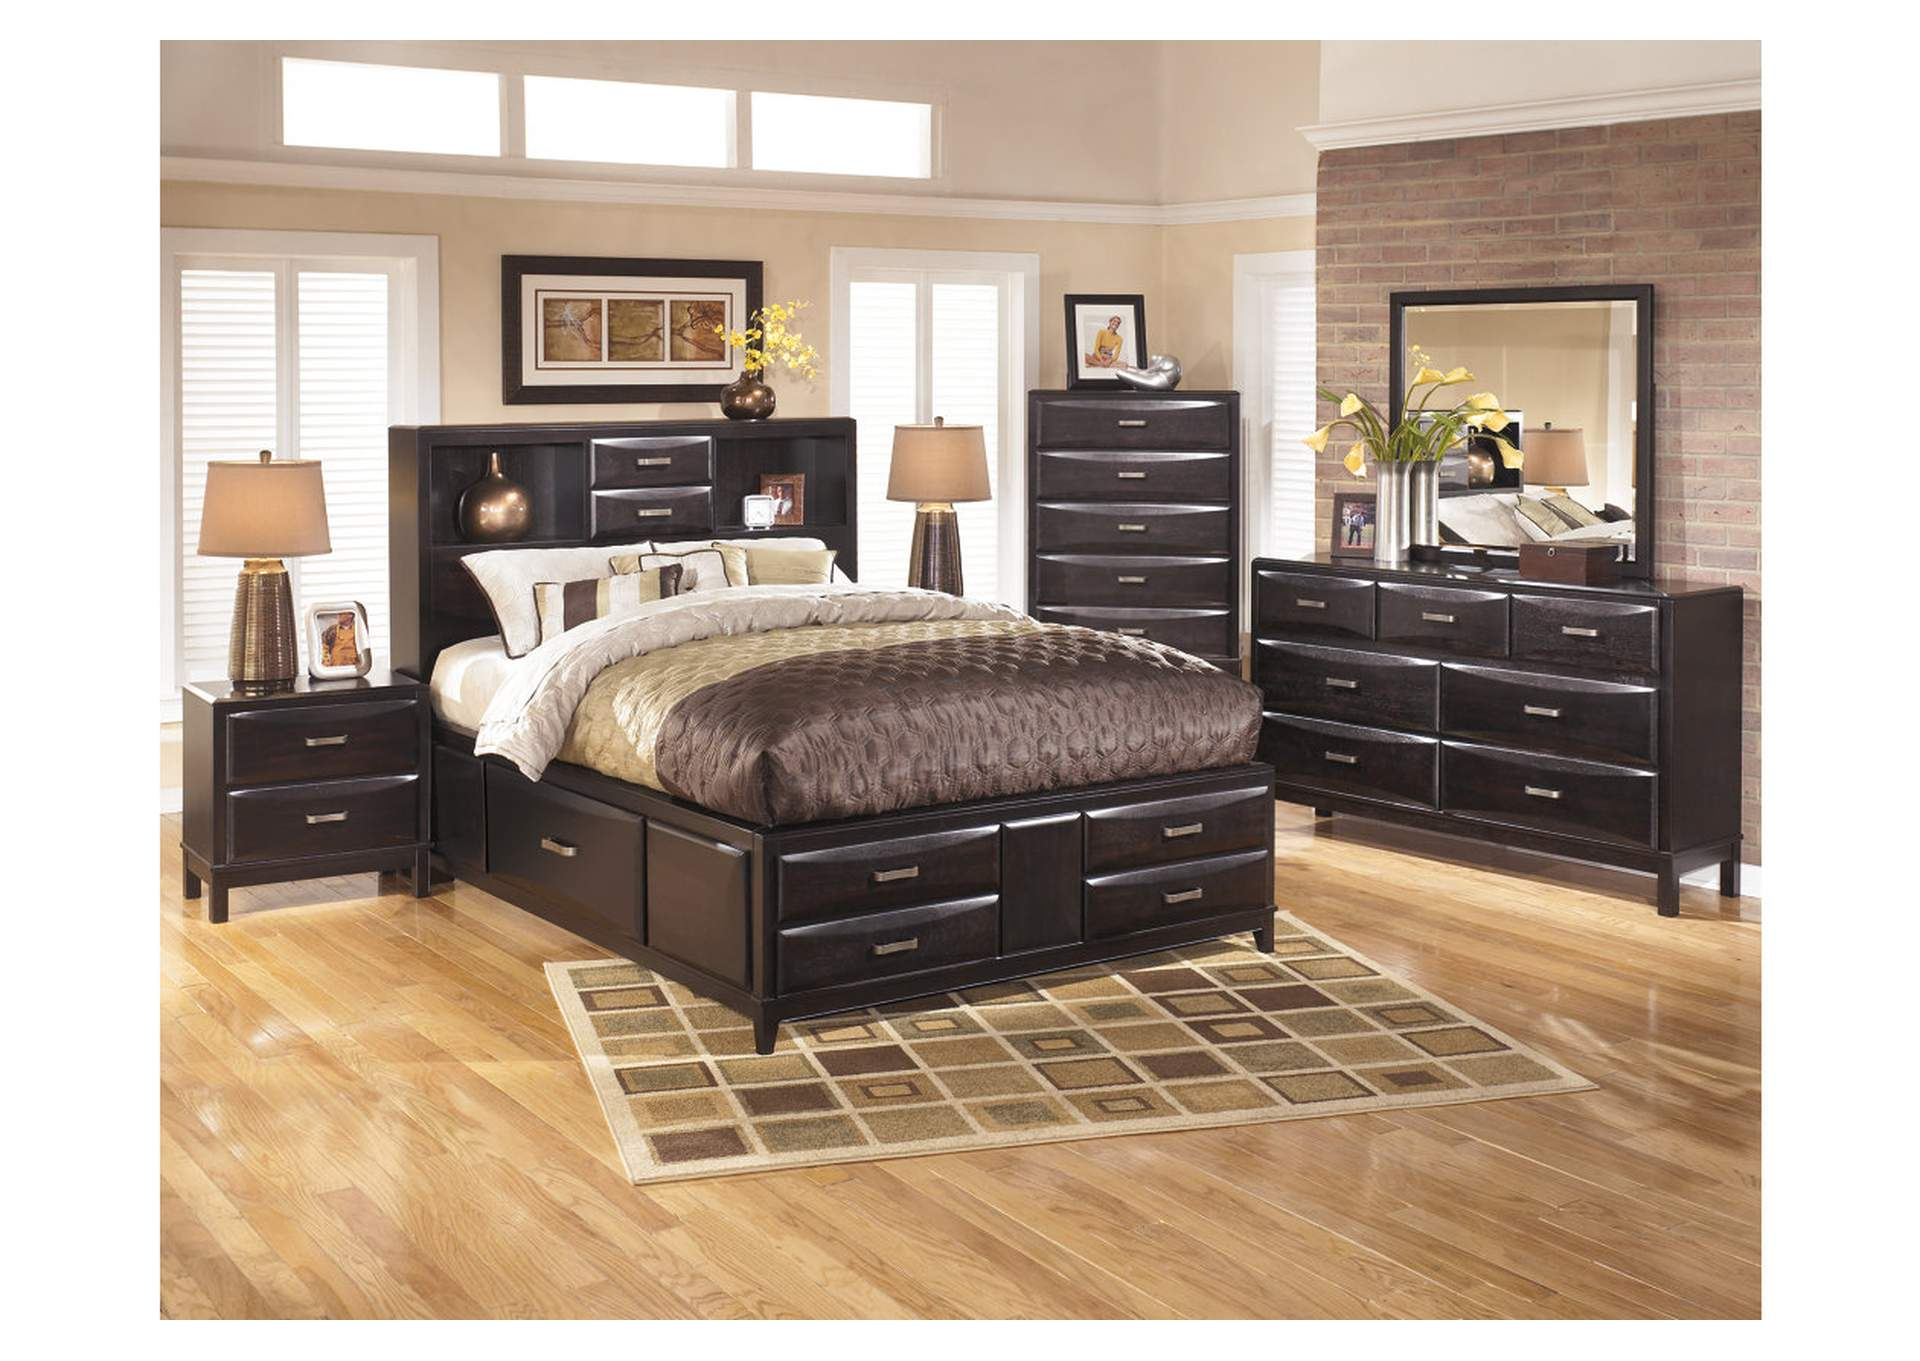 Kira Black California King Storage Bed w/Dresser, Mirror & Drawer Chest,Ashley